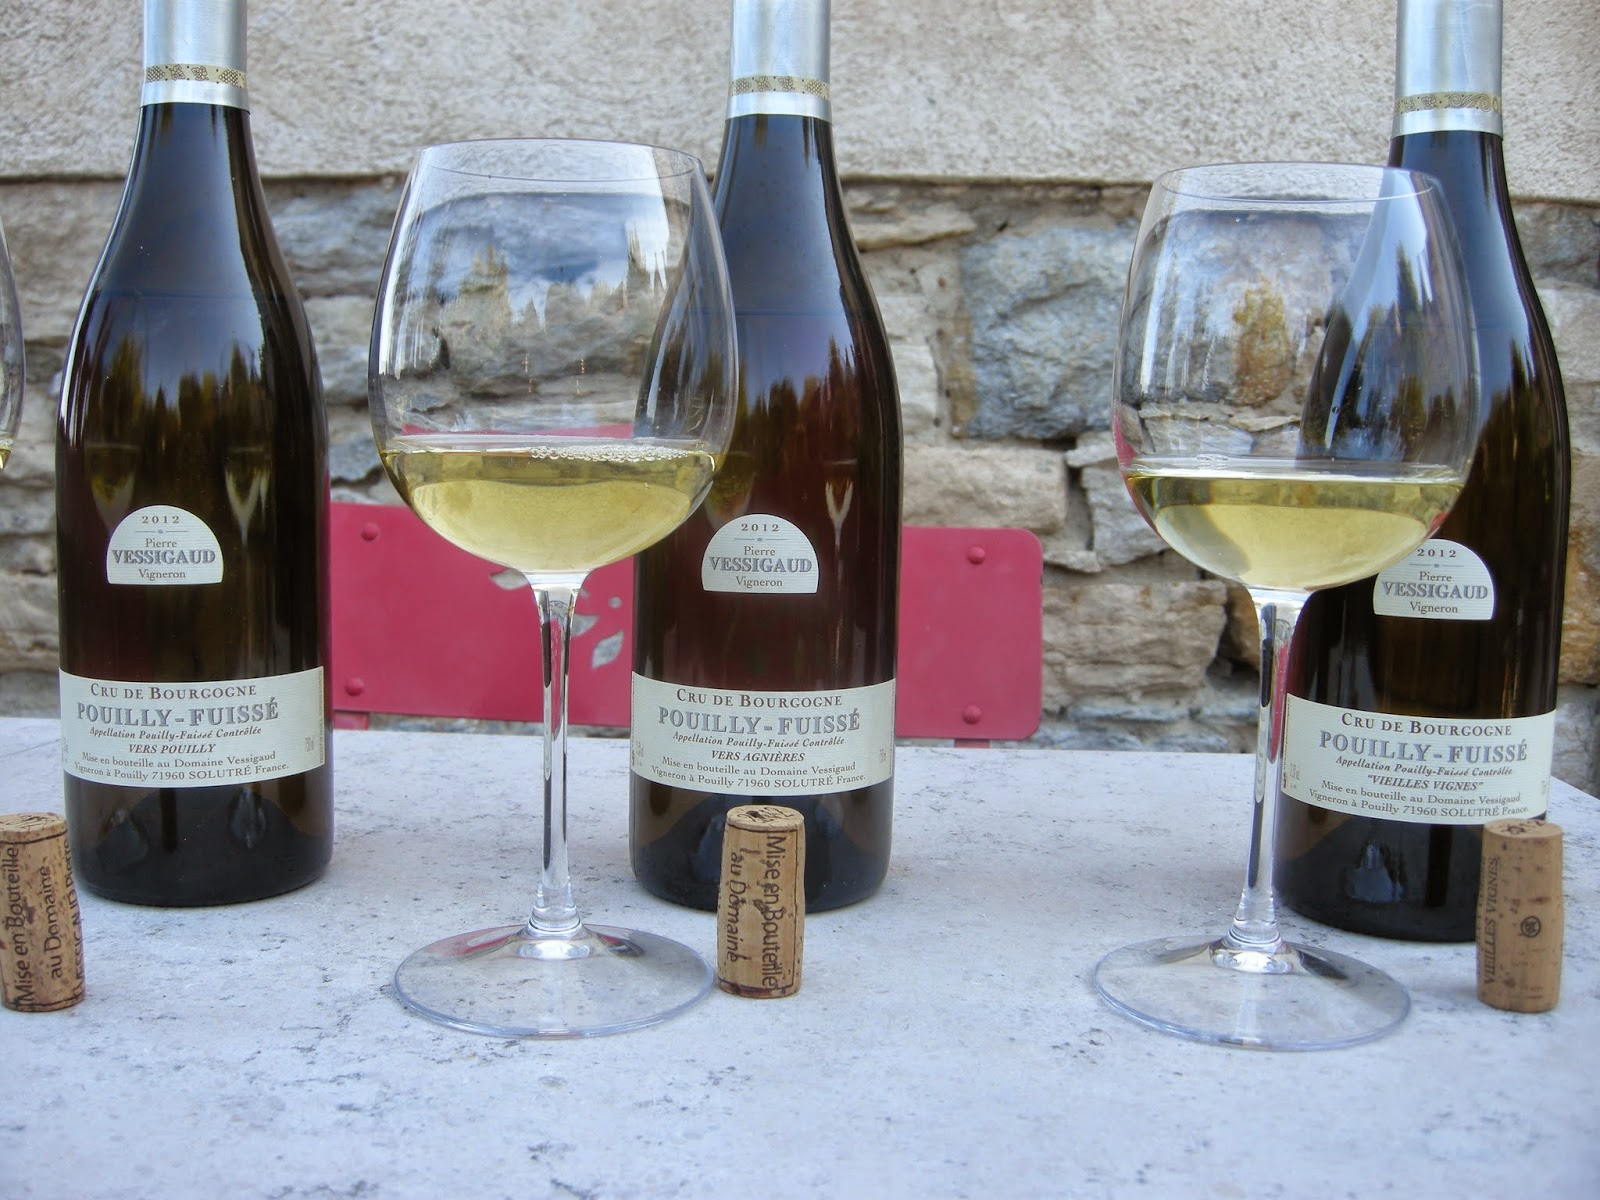 Pouilly-Fuisse Vers Pouilly